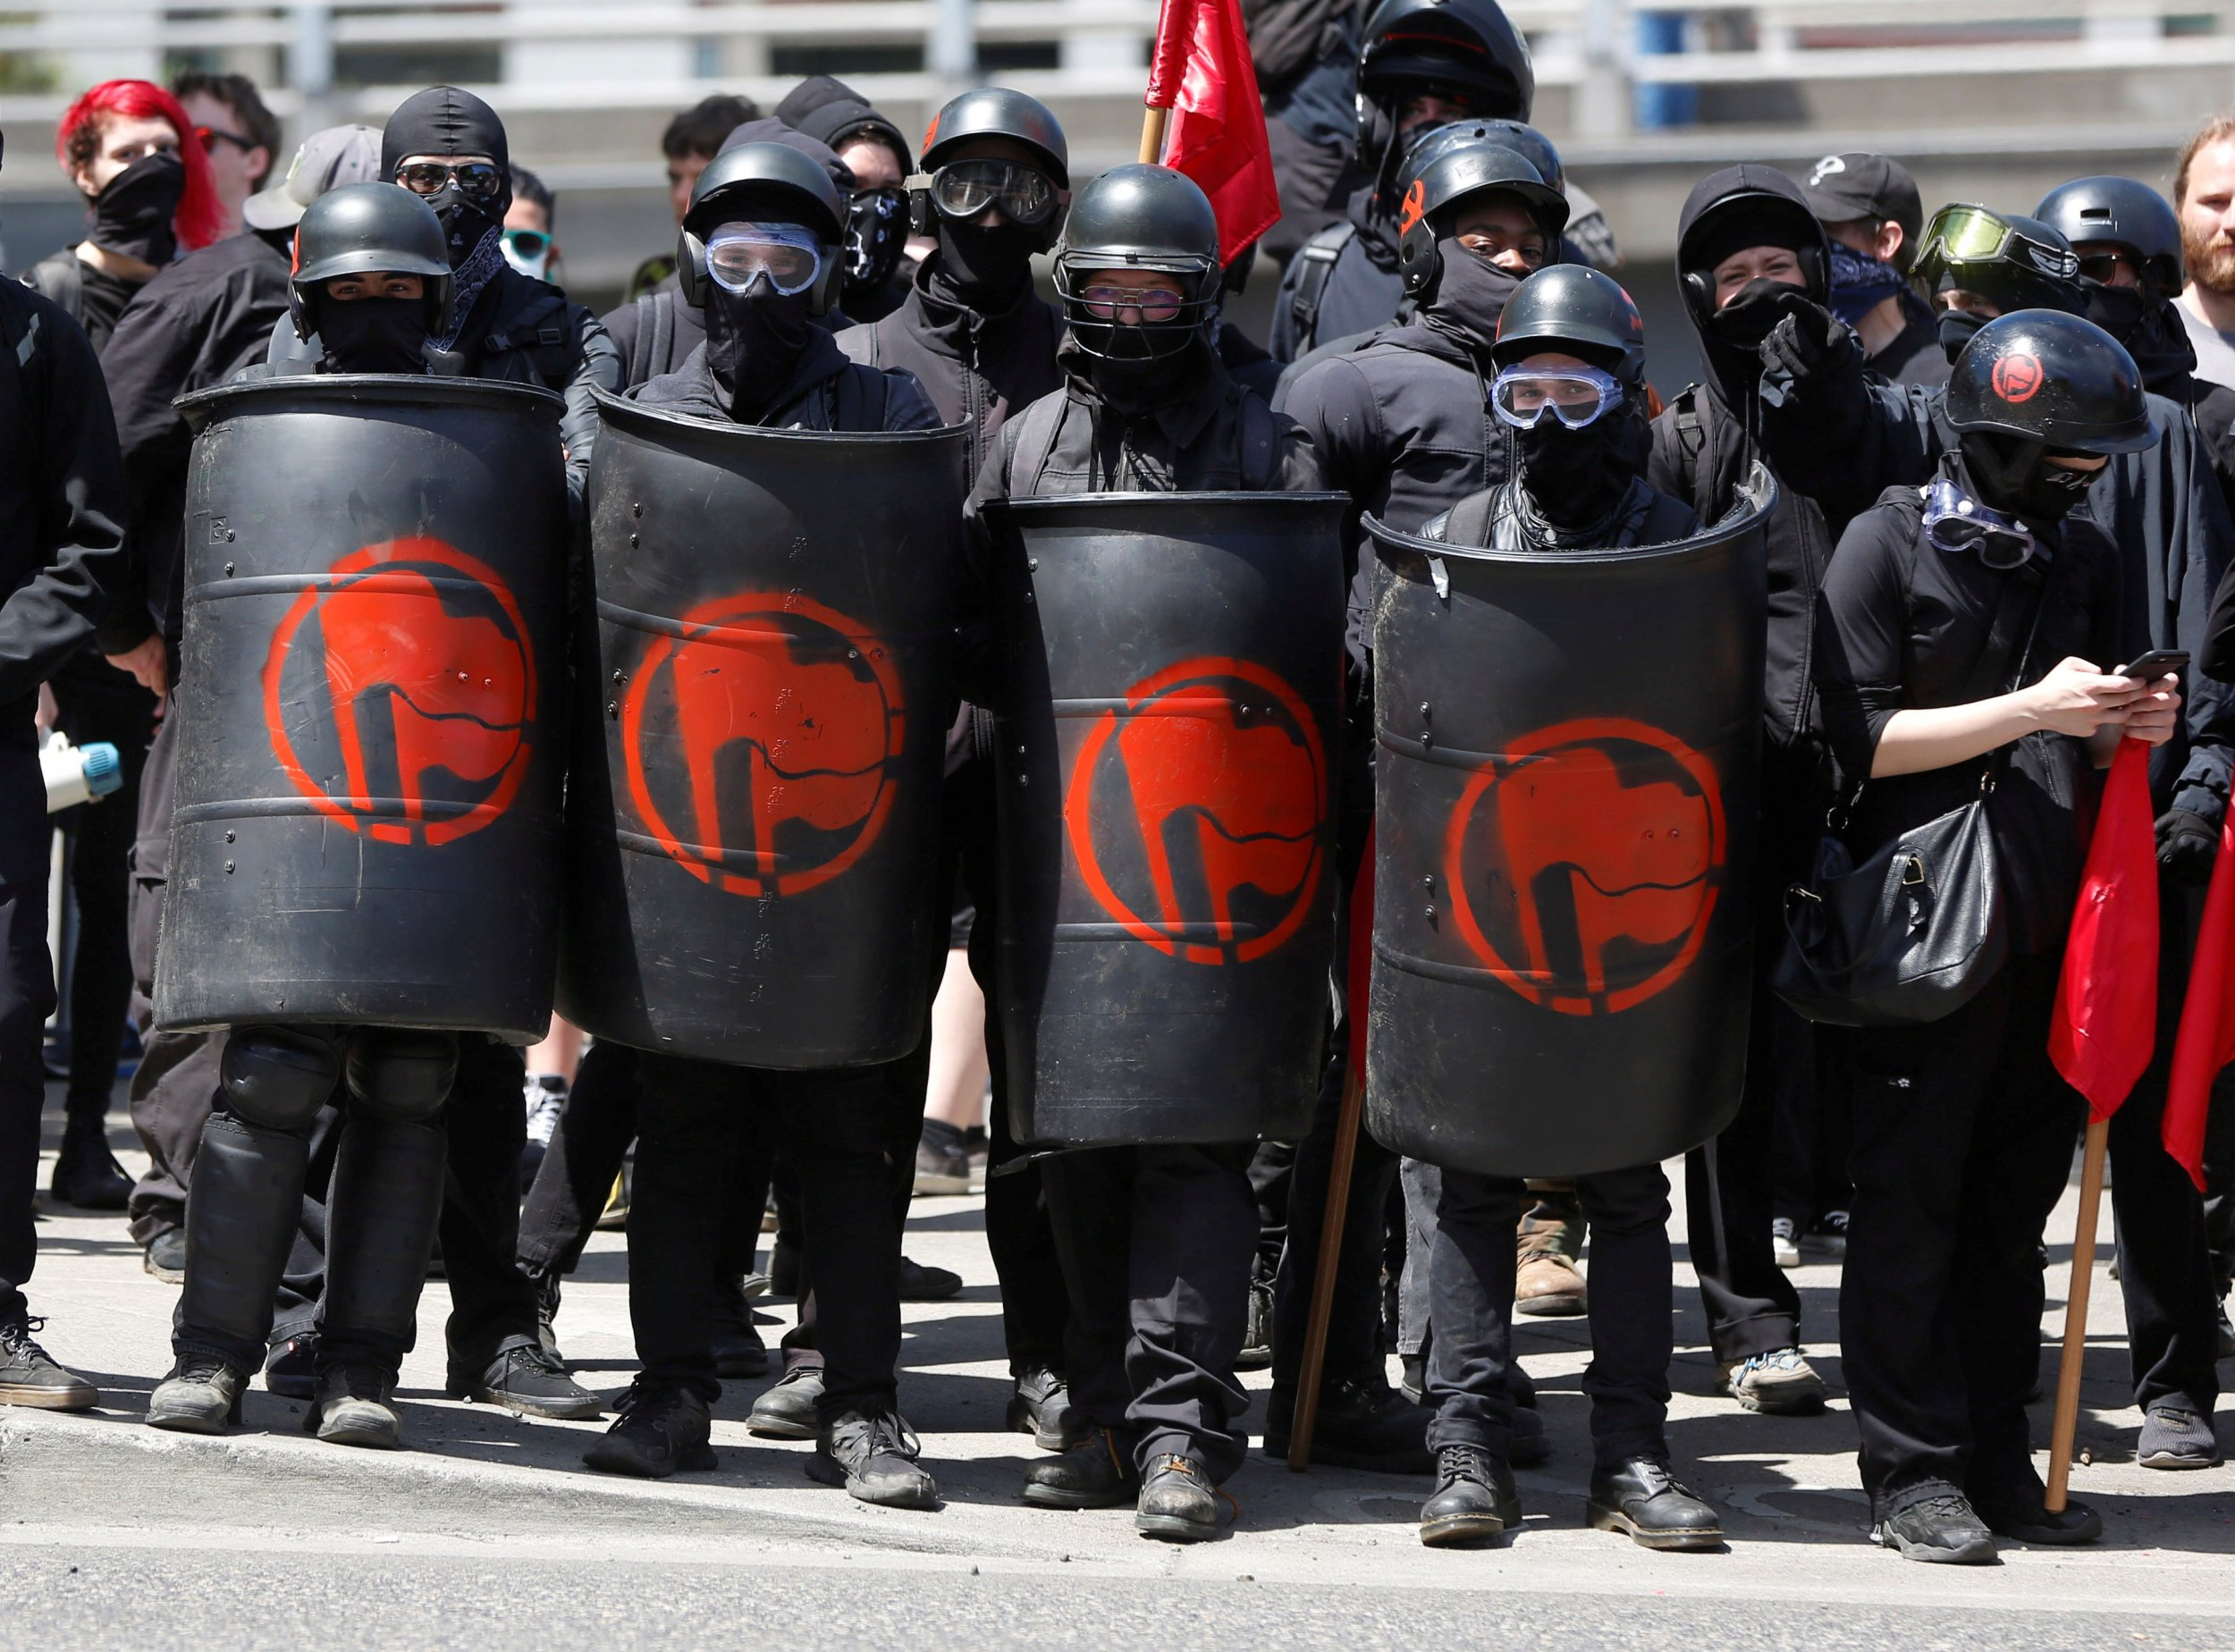 peacefullyprotestyou into submission jihad style antifa style brownshirt style